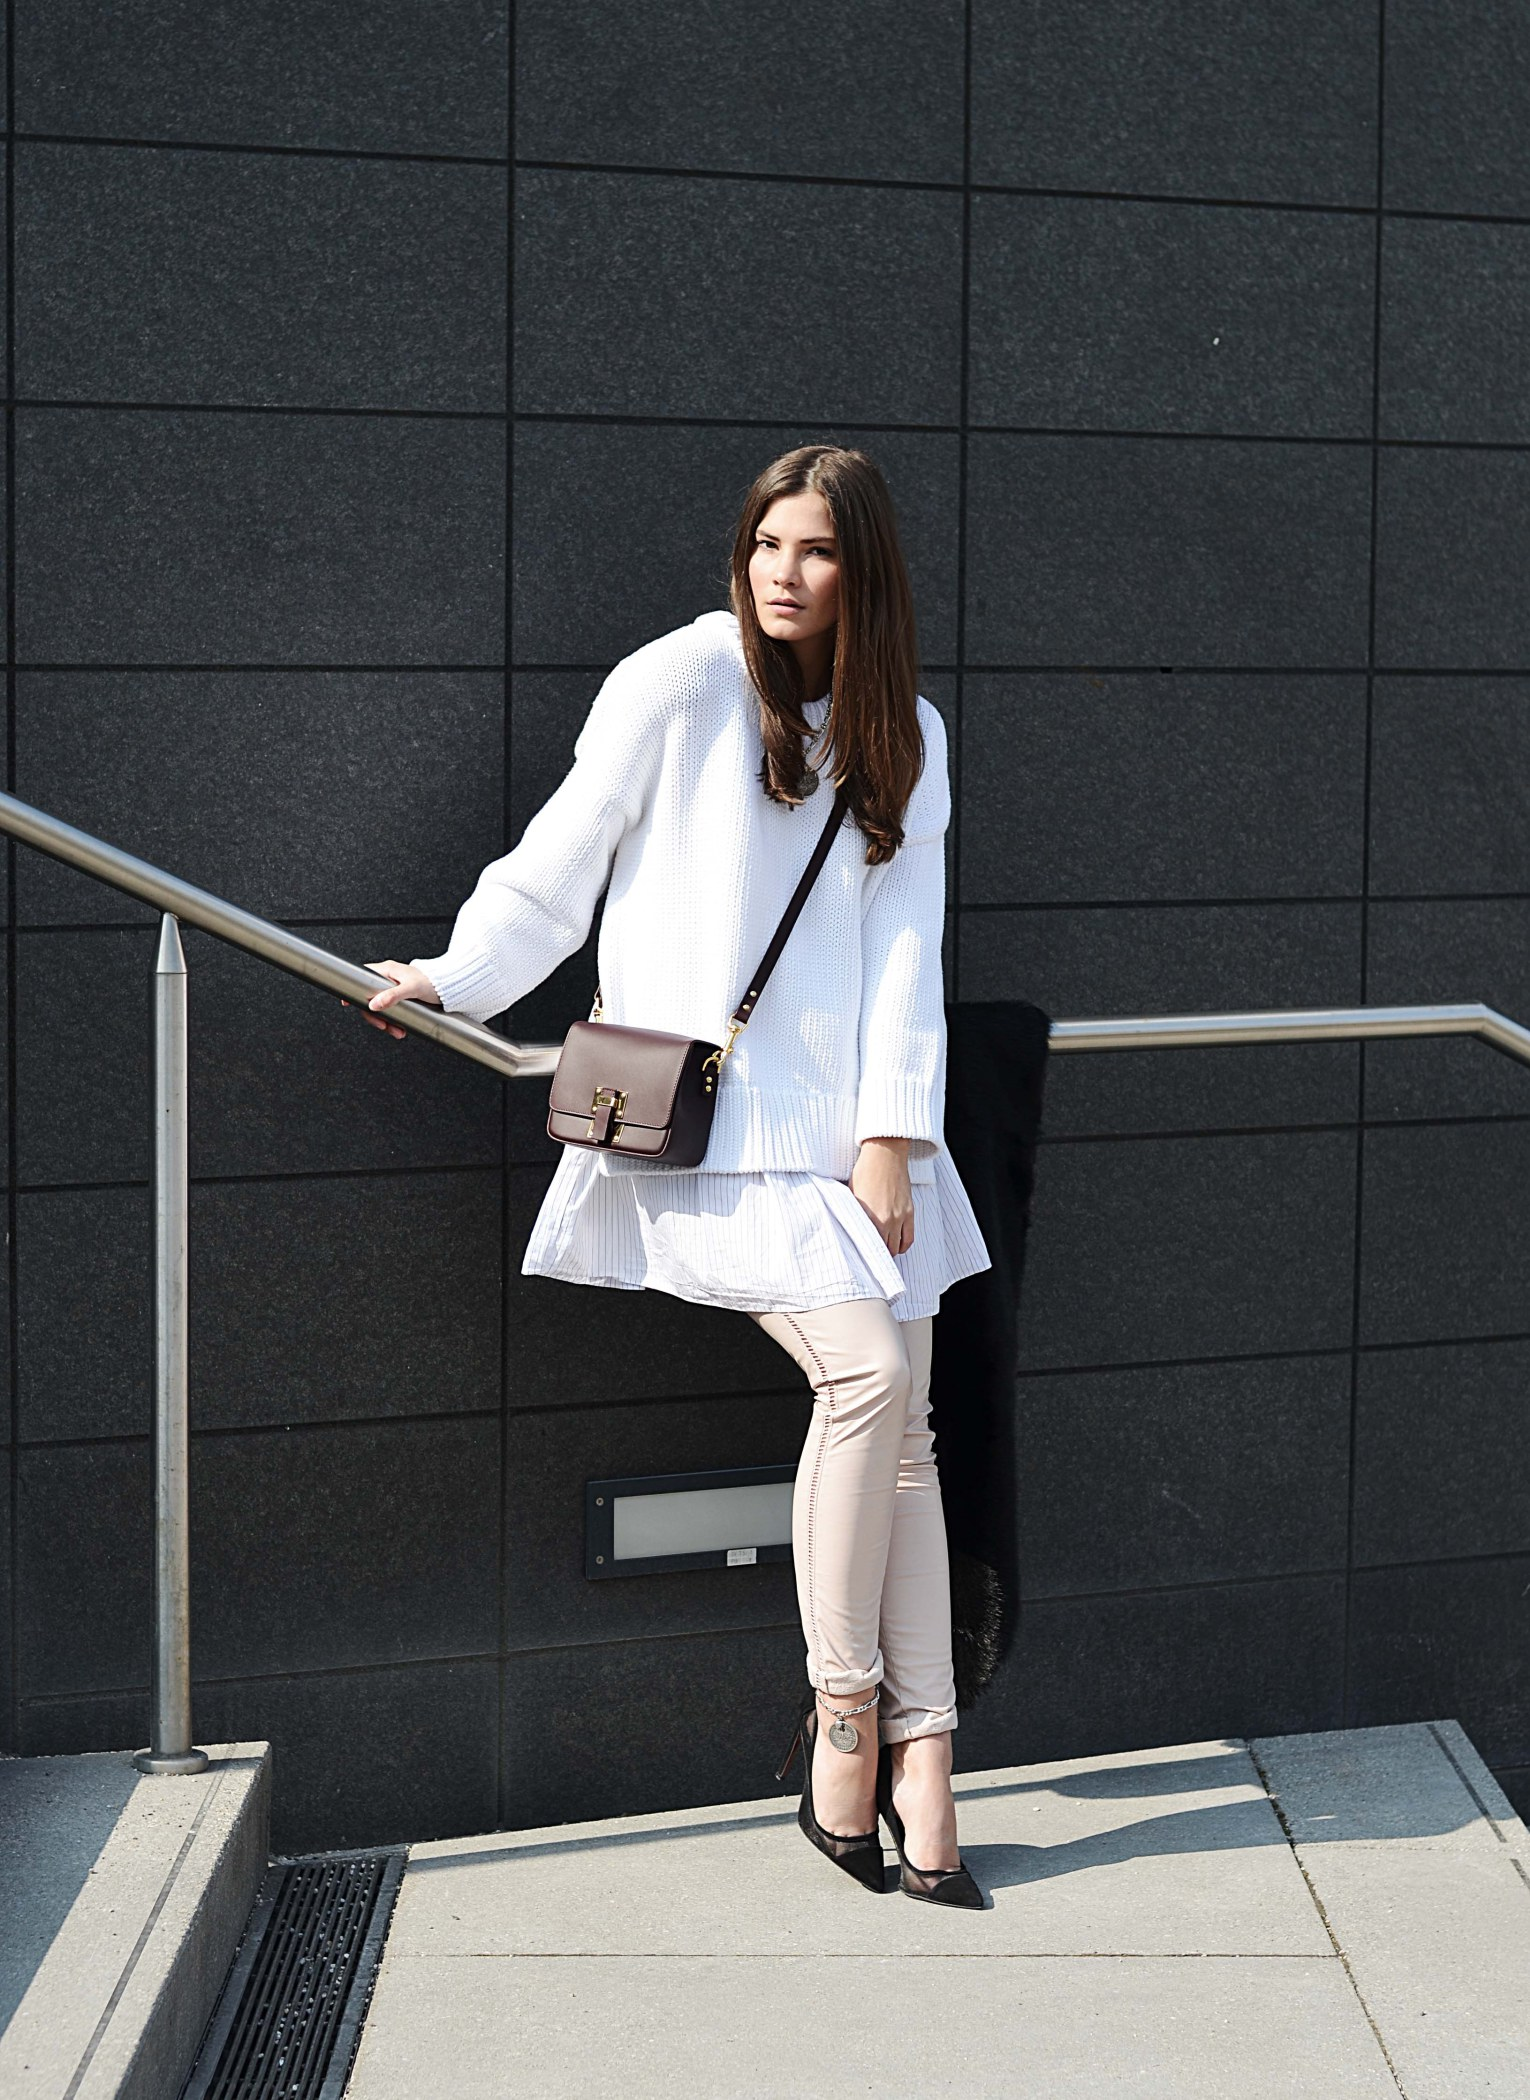 Steal Her Style: Fashiioncarpet | Love Daily Dose